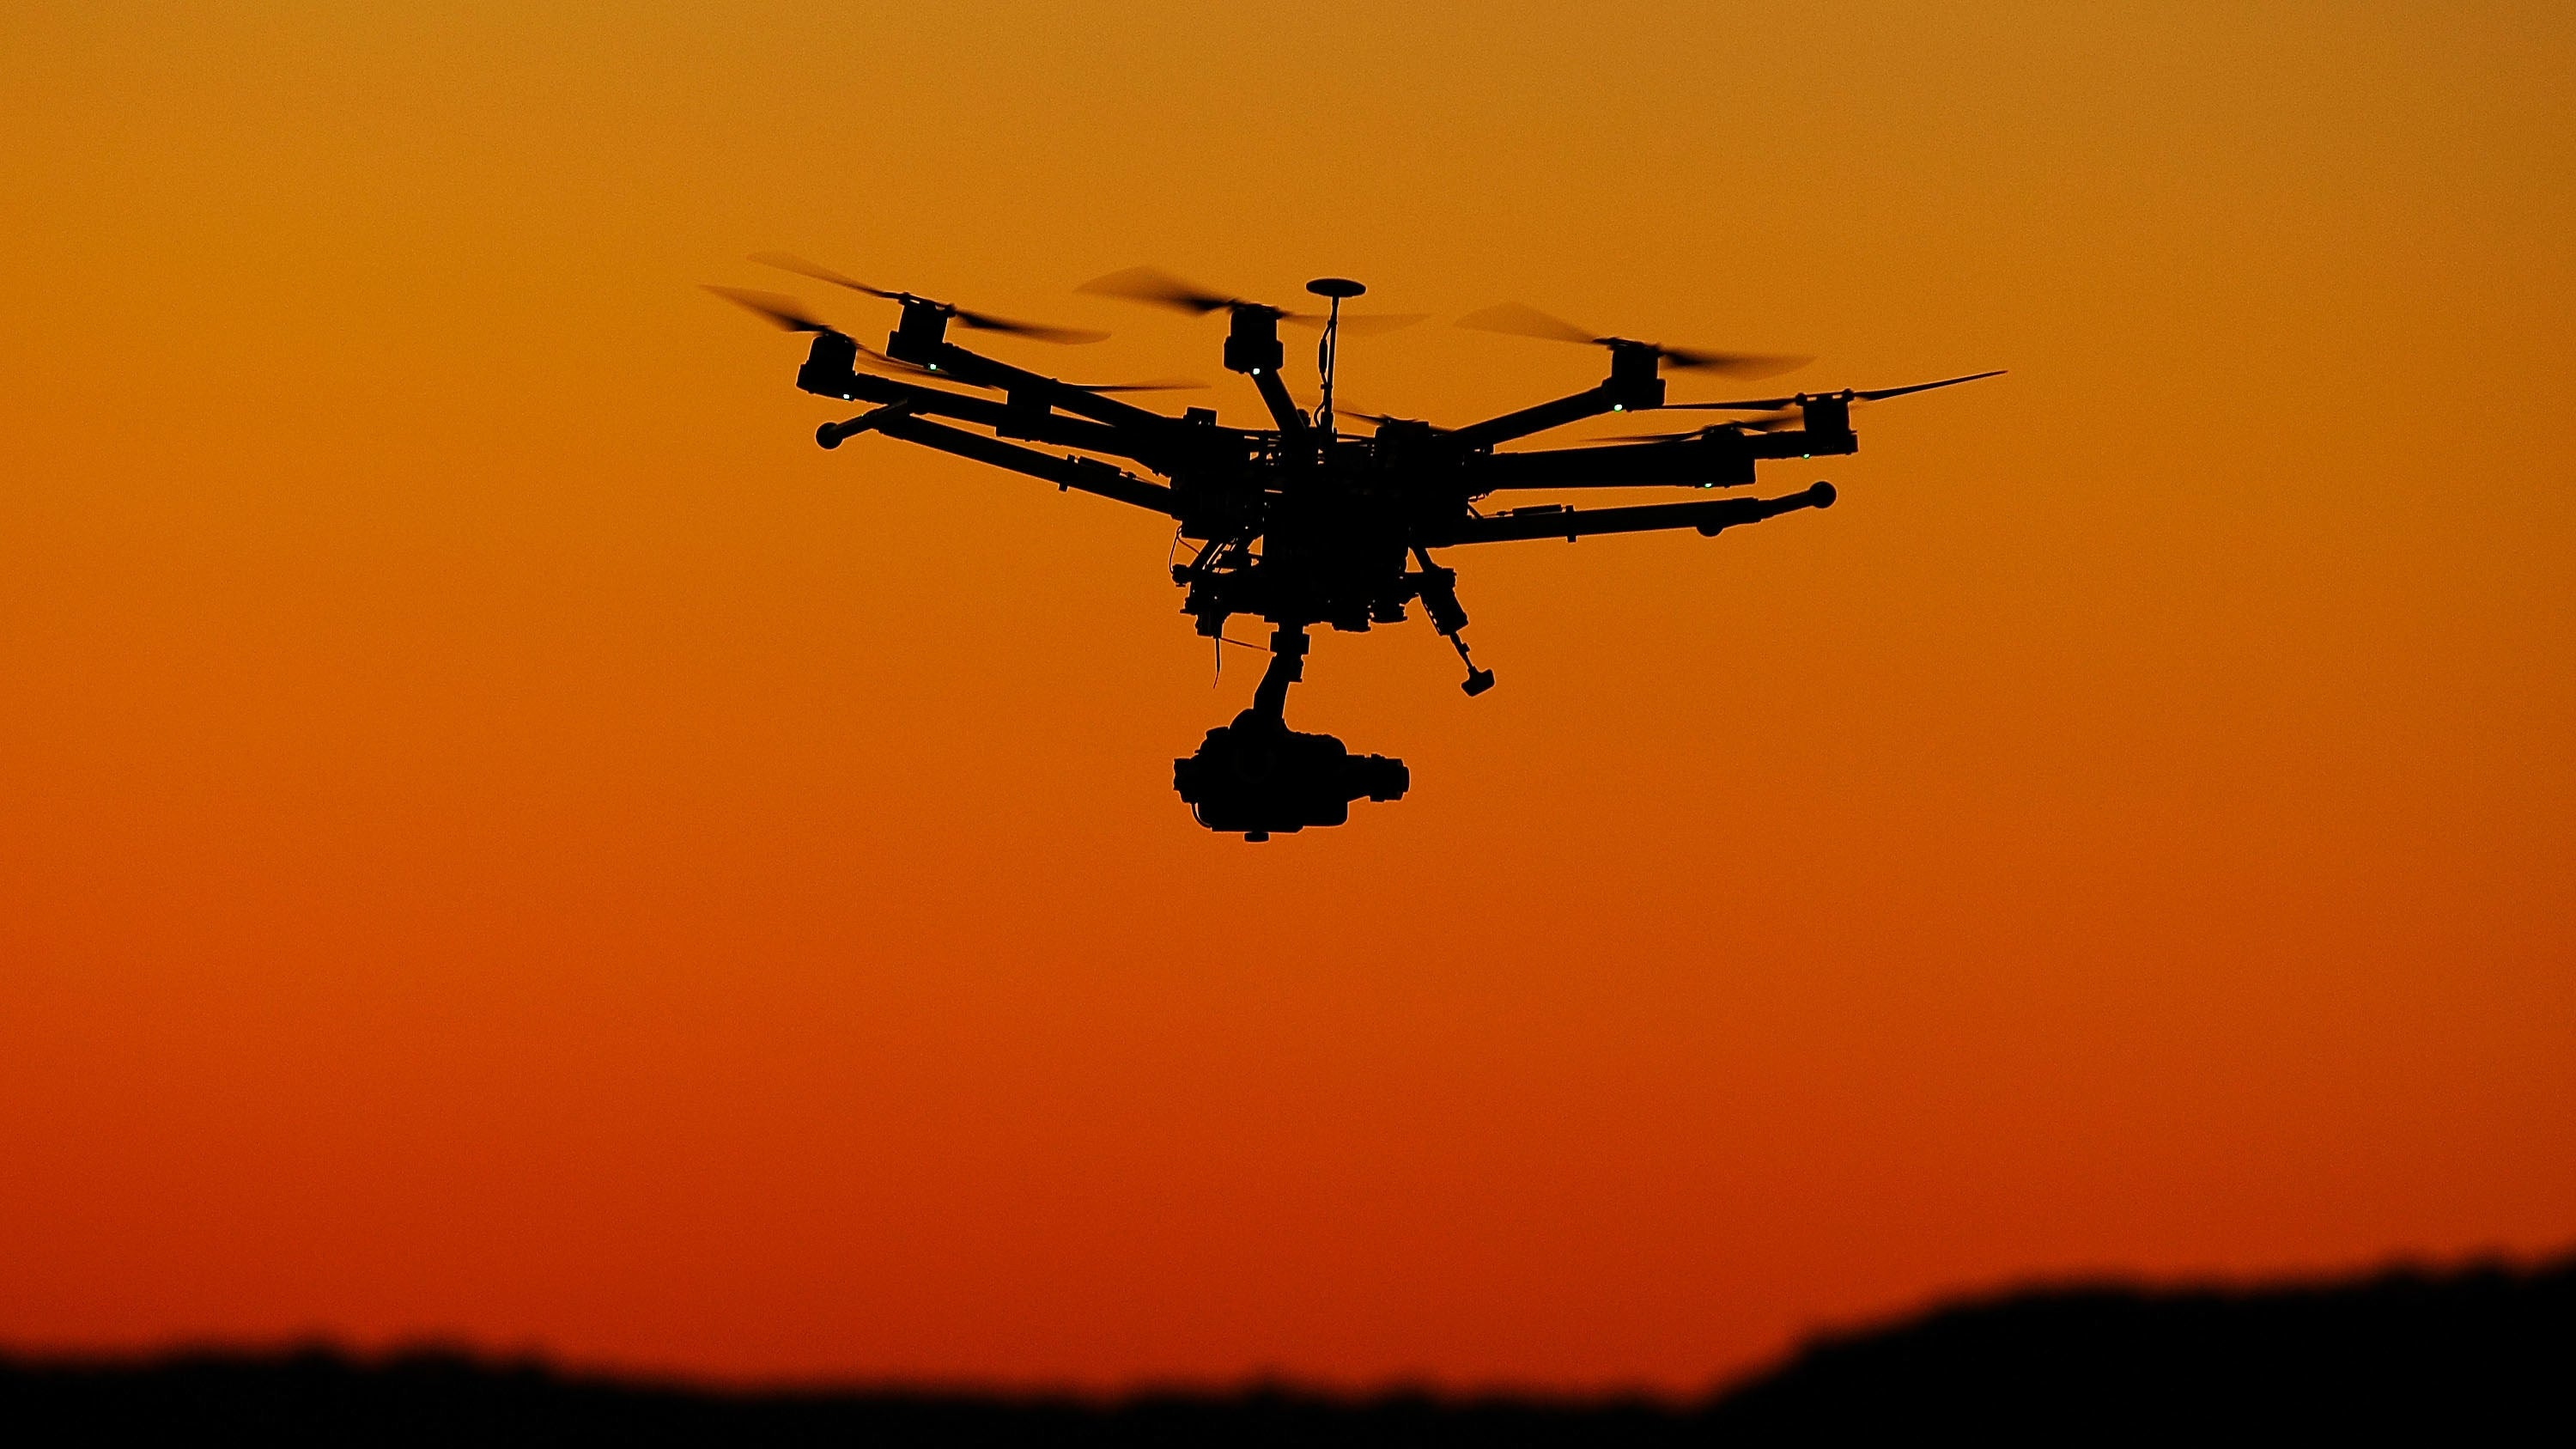 airplanes drones flying uavs